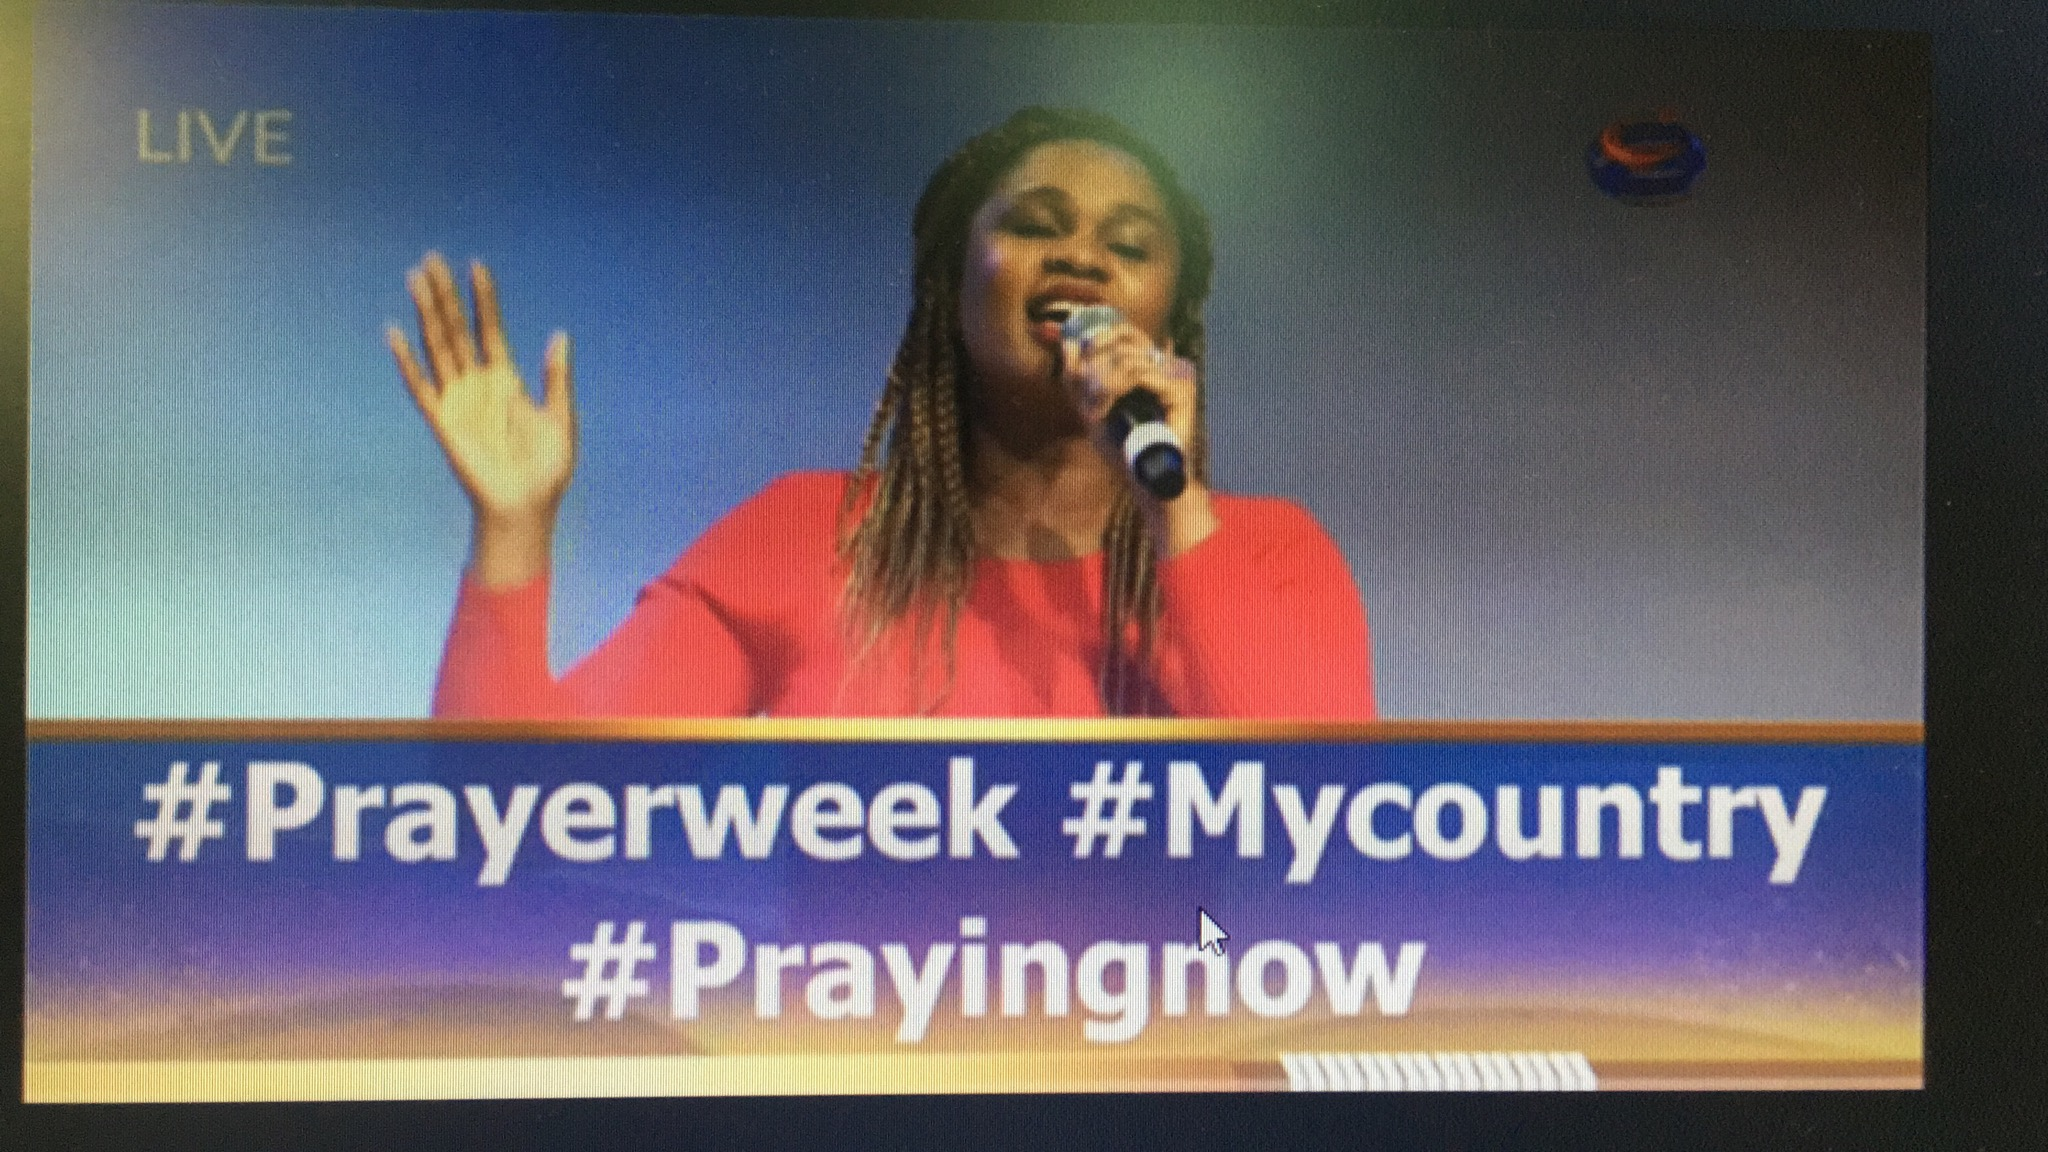 Connected🙌🏾🙏🏾 #prayingnow #southafrica #prayer